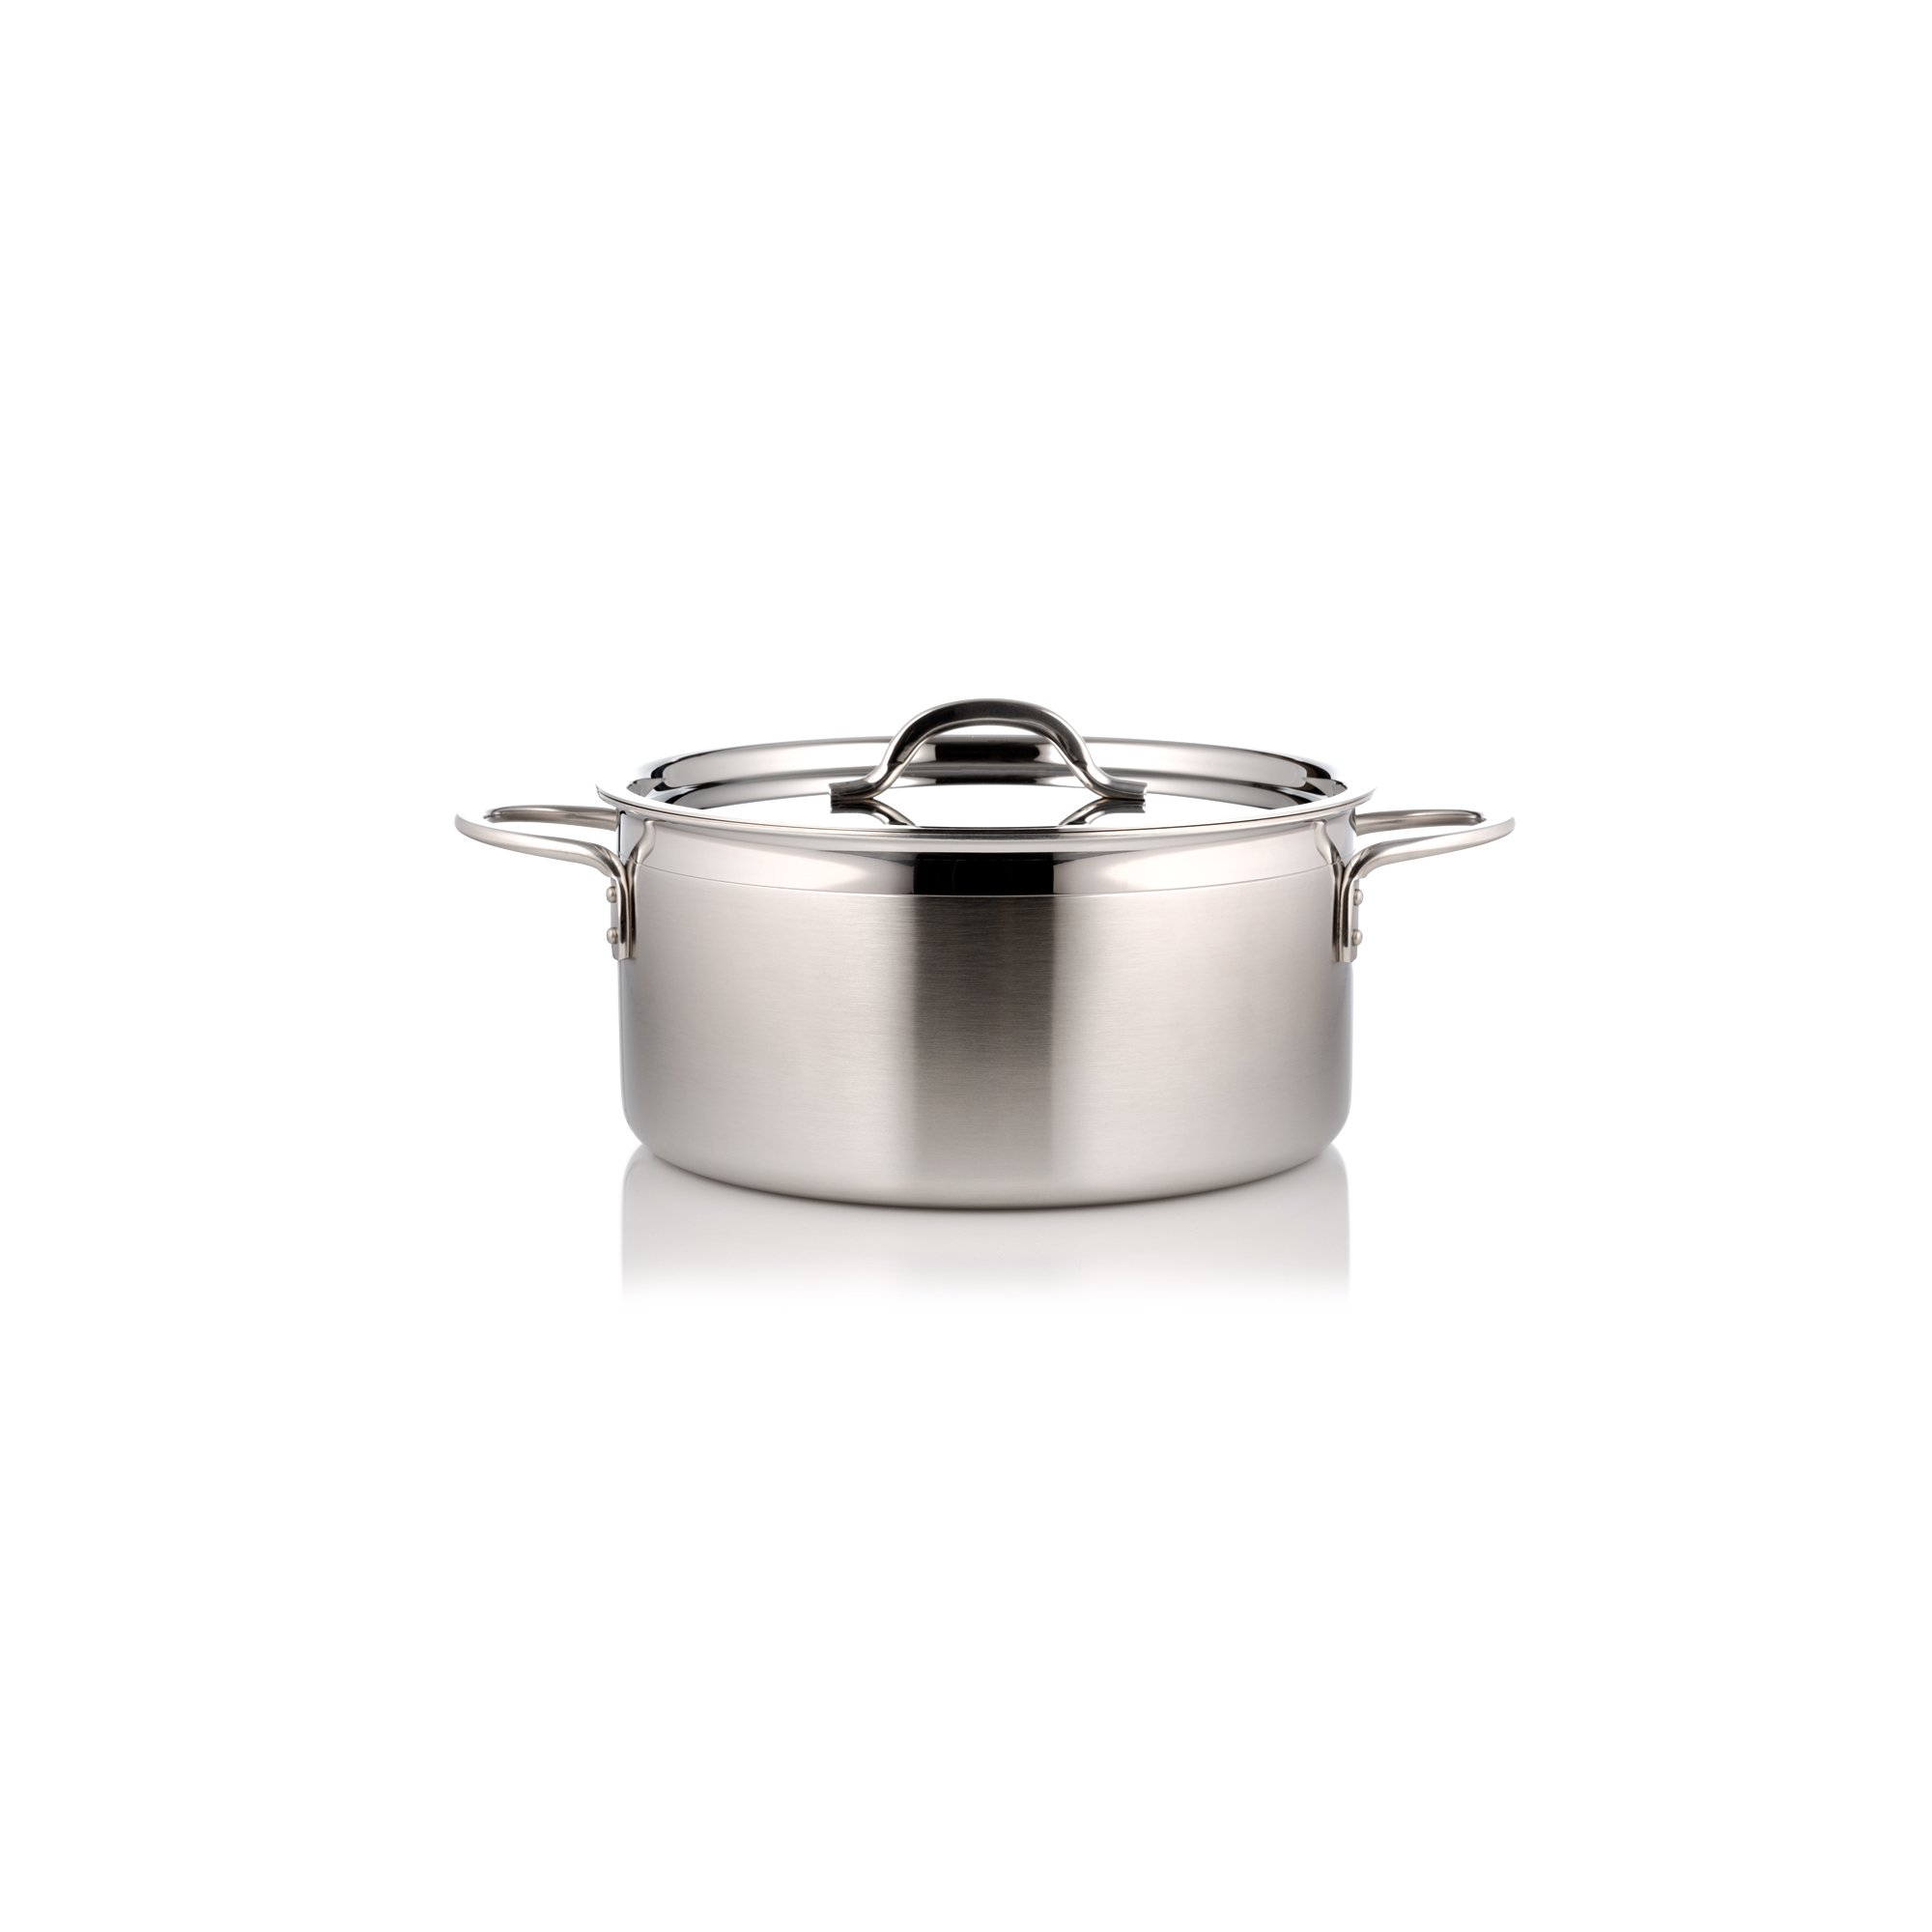 Bon Chef 60300-2ToneSS Country French Two Tone, 2.3 quart Pot with Cover, Stainless Steel